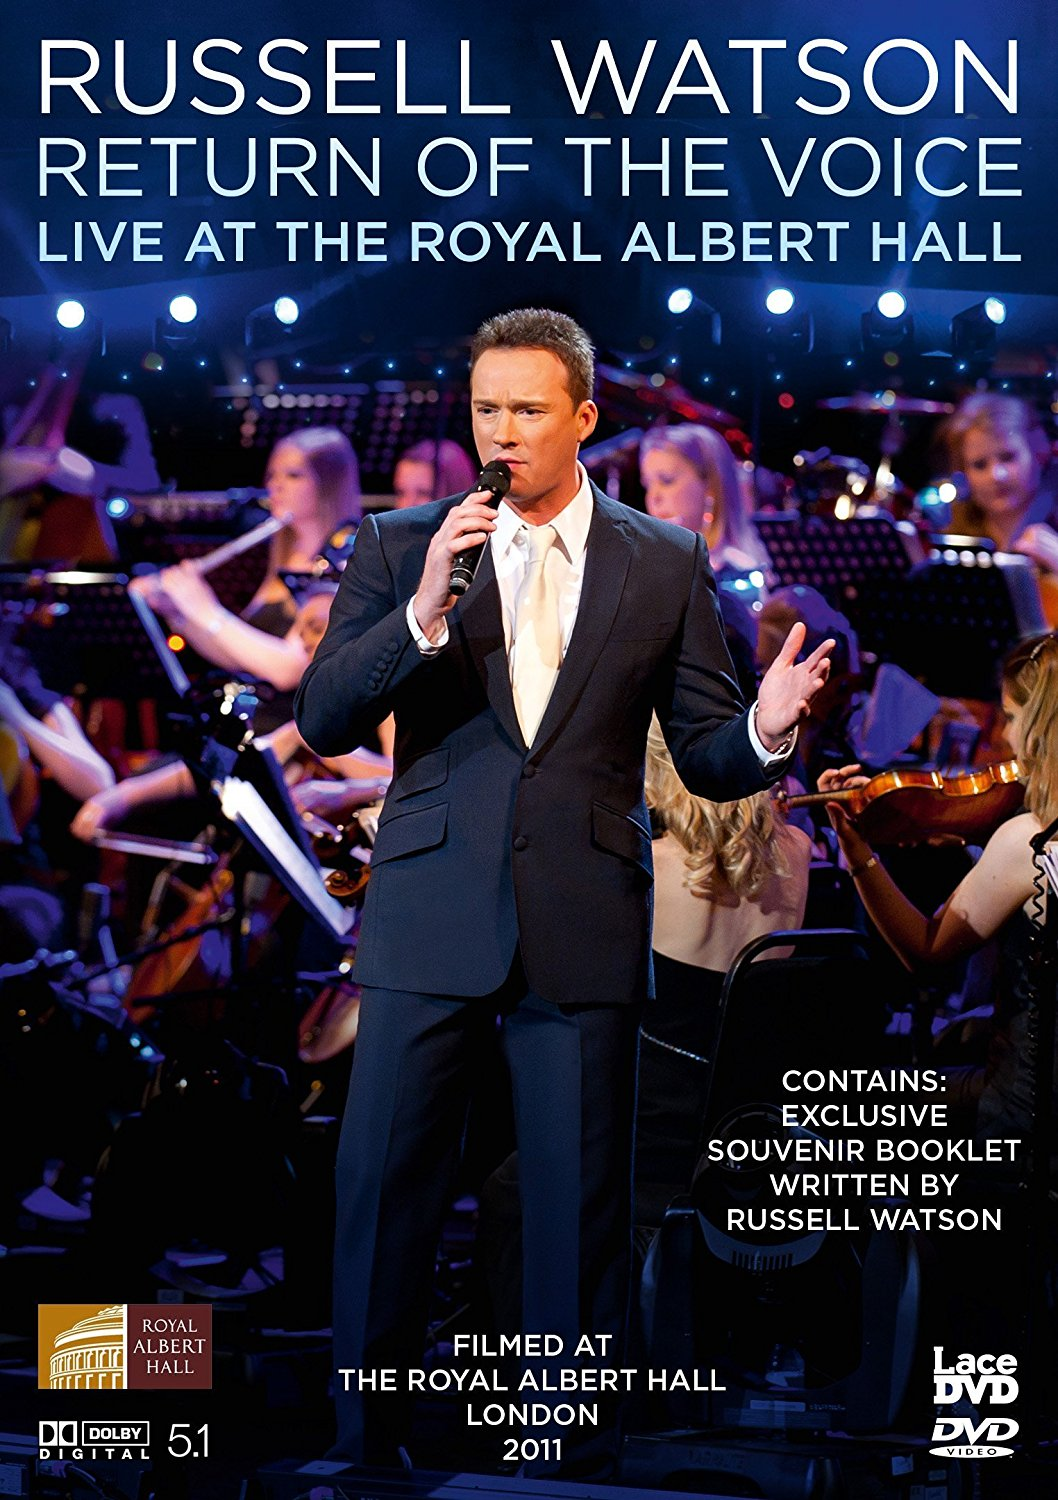 Russell Watson Return Of The Voice - Live From The Royal Albert Hall (DVD)